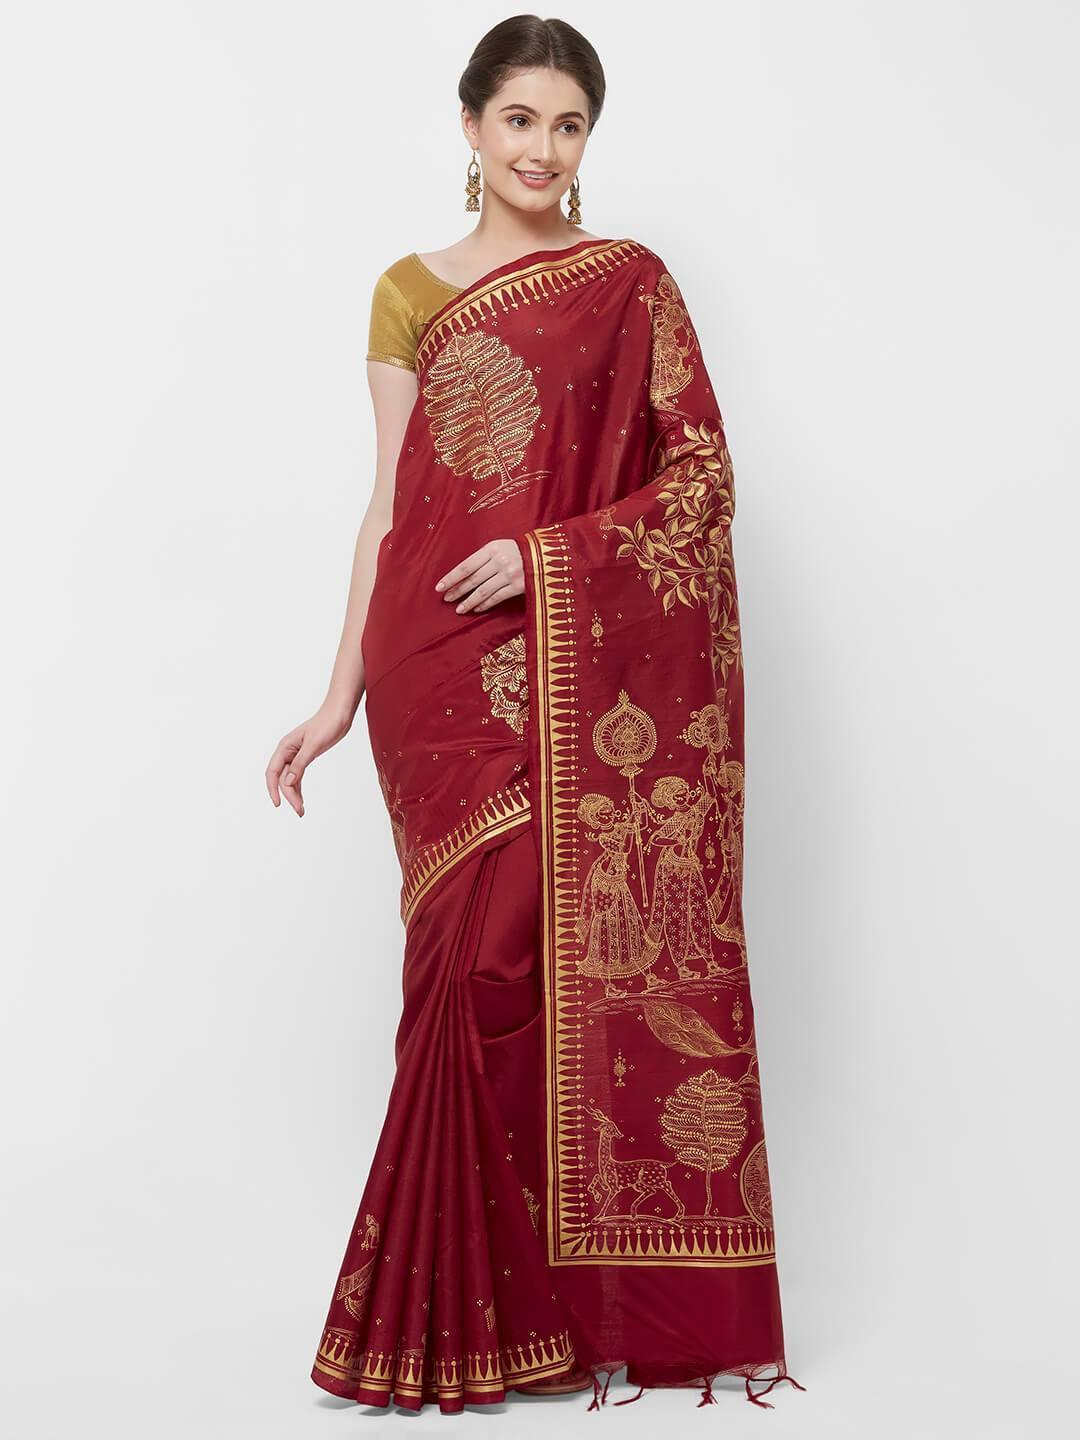 CraftsCollection.in -Red Pure Silk Saree with handpainted Pattachitra motifs